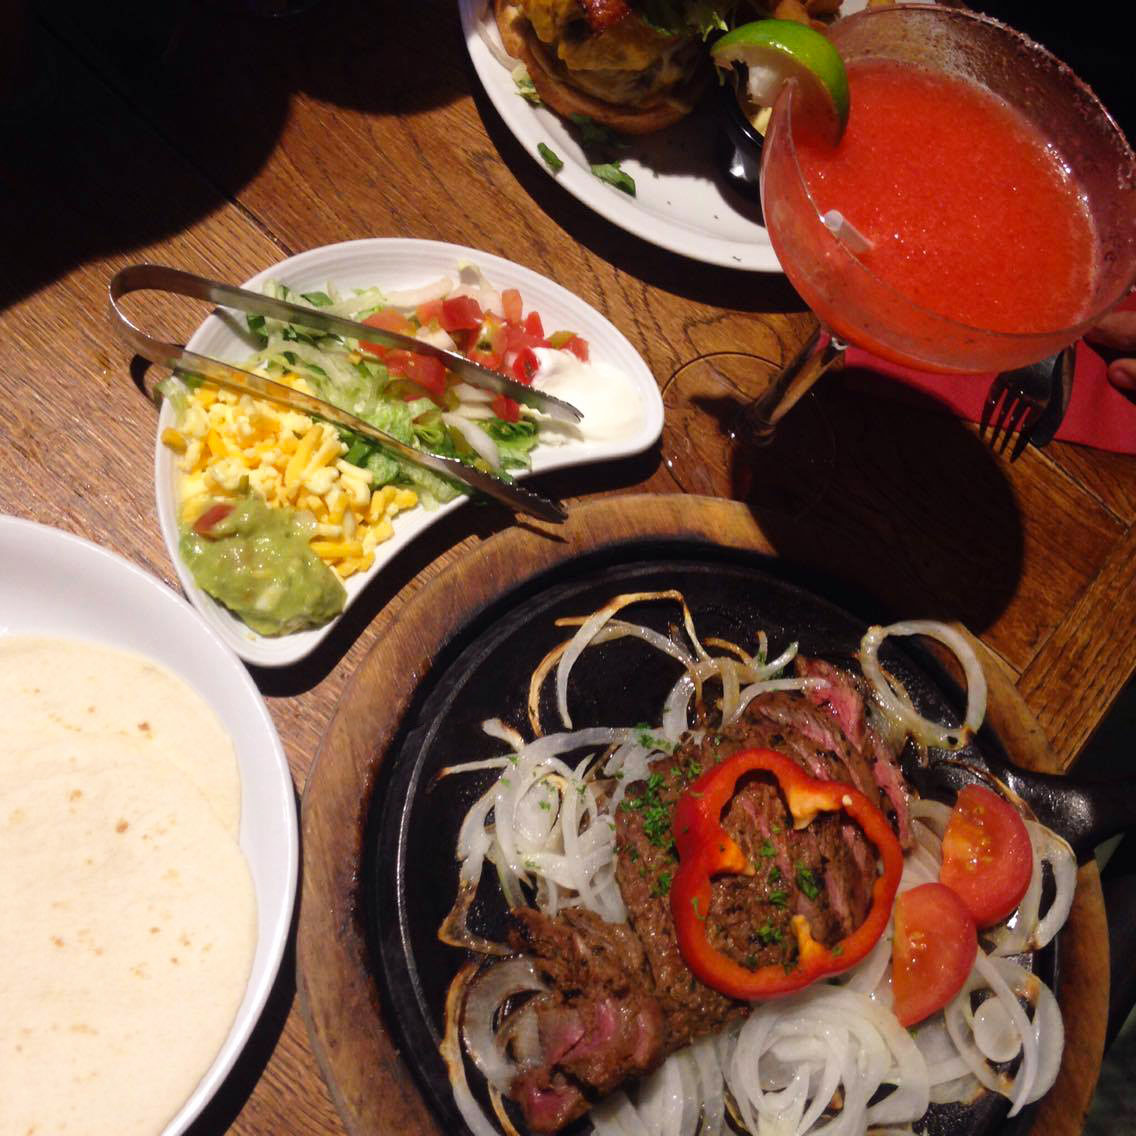 wood-wayne-restaurant-waterloo-tex-blog-avis-fajitas-boeuf